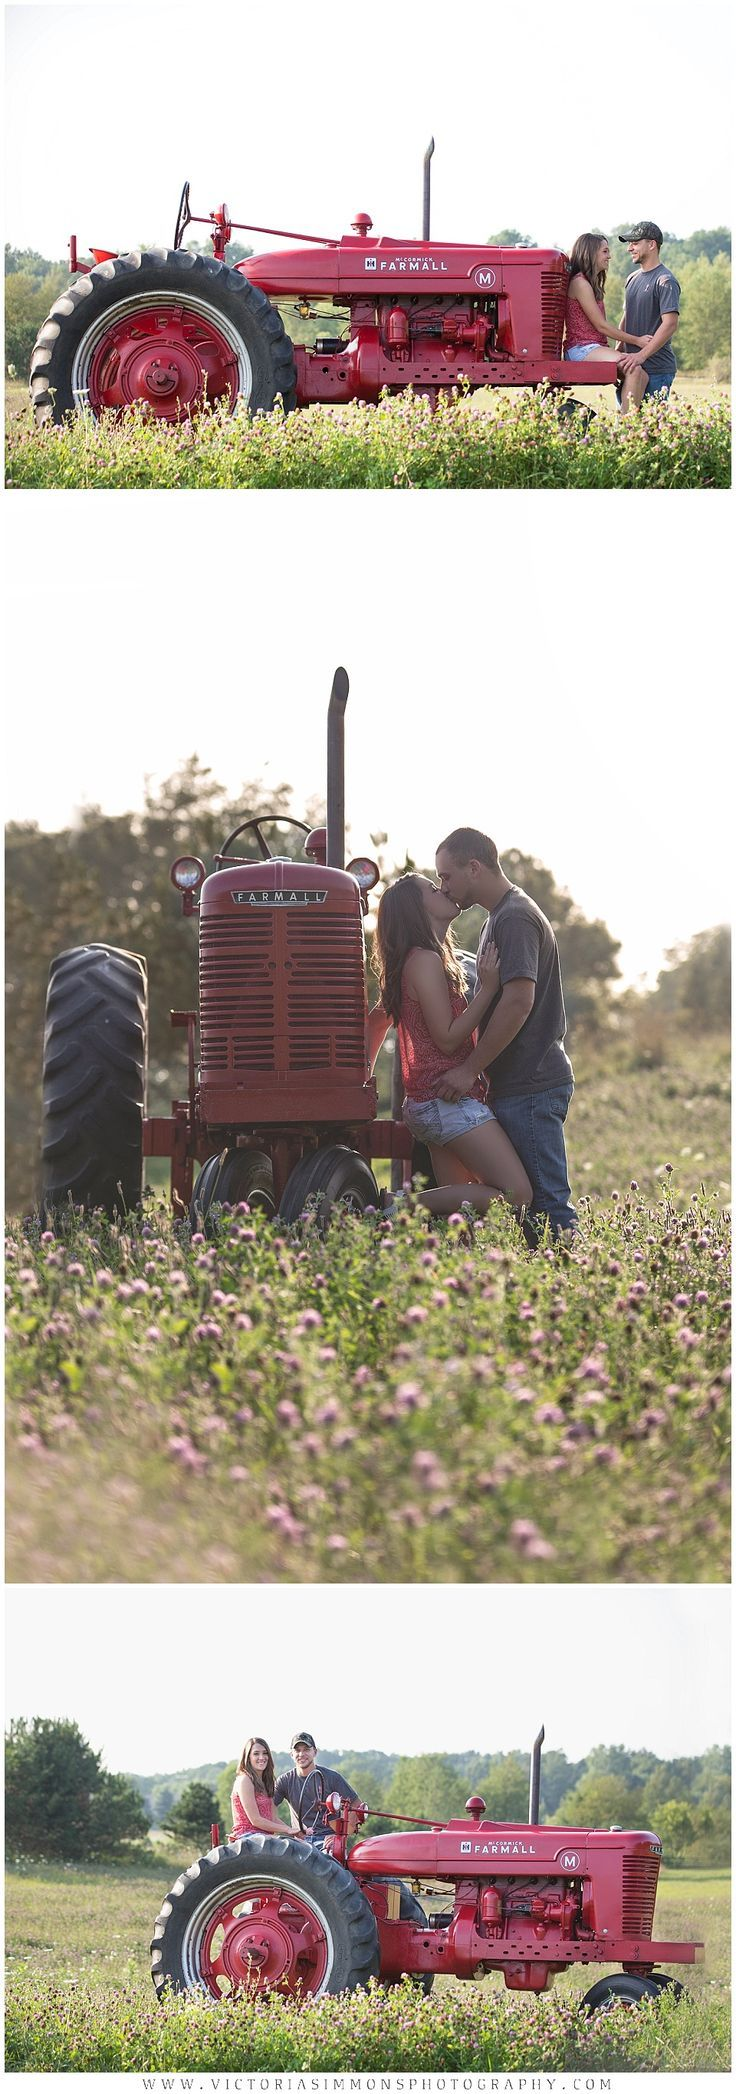 Country engagement shoot with Farmall tractor. Look even better with a john Deere #country #countrythang #countryengagementphoto #countrycouple